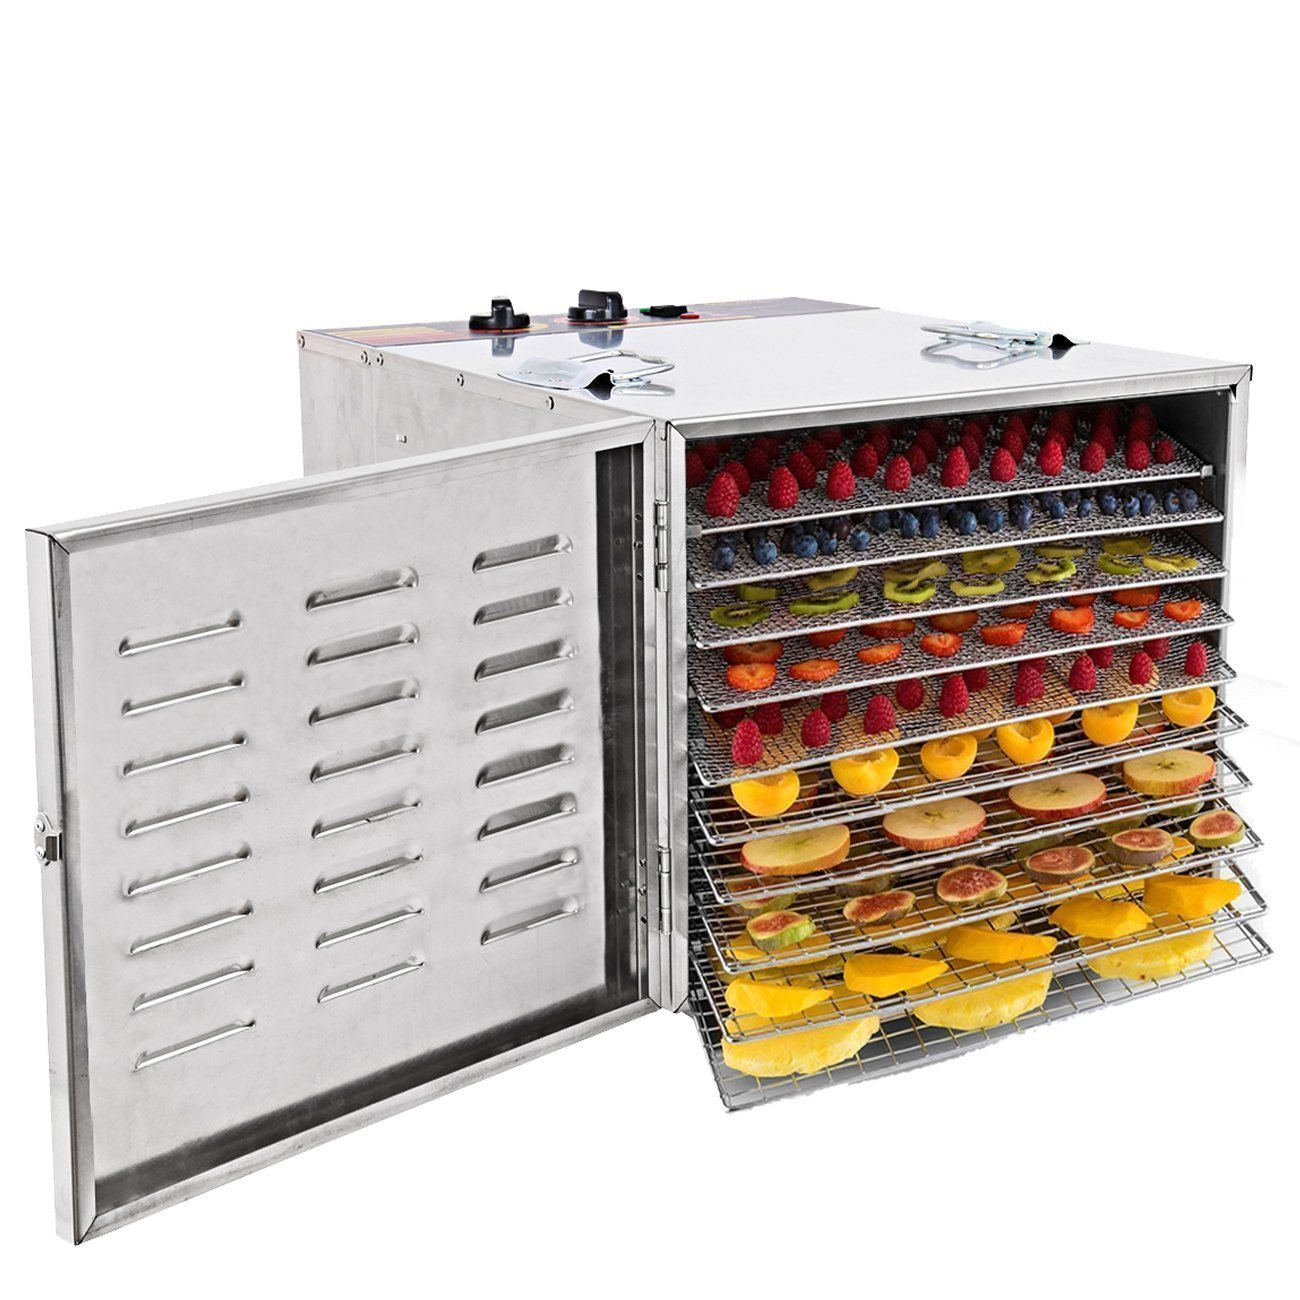 Ridgeyard 1000W Stainless Steel 10-Tray Countertop Food Dehydrator Fruit Jerky Dryer Food Saver Preserver Dehydration Vegetable Meat Beef Jerky Maker W/ Timer,Temperature Control for a Healthy Diet